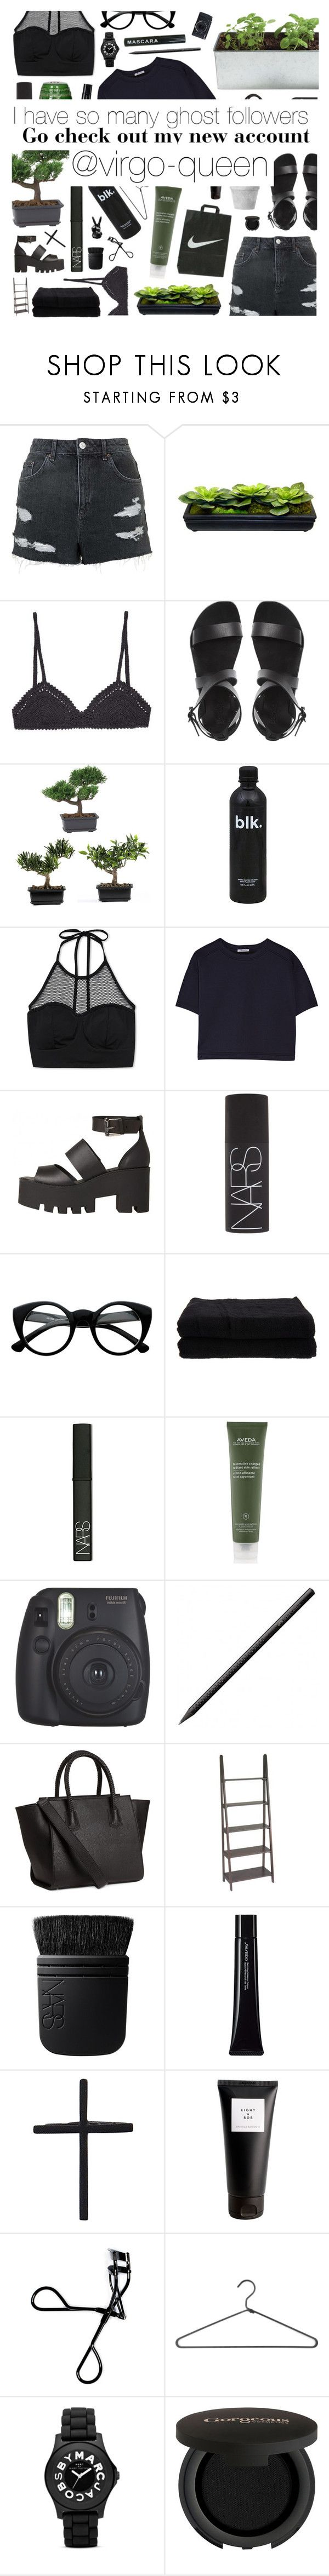 """""""I have a new Account!!"""" by sarahkatewest ❤ liked on Polyvore featuring Topshop, SHE MADE ME, Nearly Natural, Forever 21, T By Alexander Wang, Windsor Smith, NARS Cosmetics, Retrò, Home Source International and Aveda"""